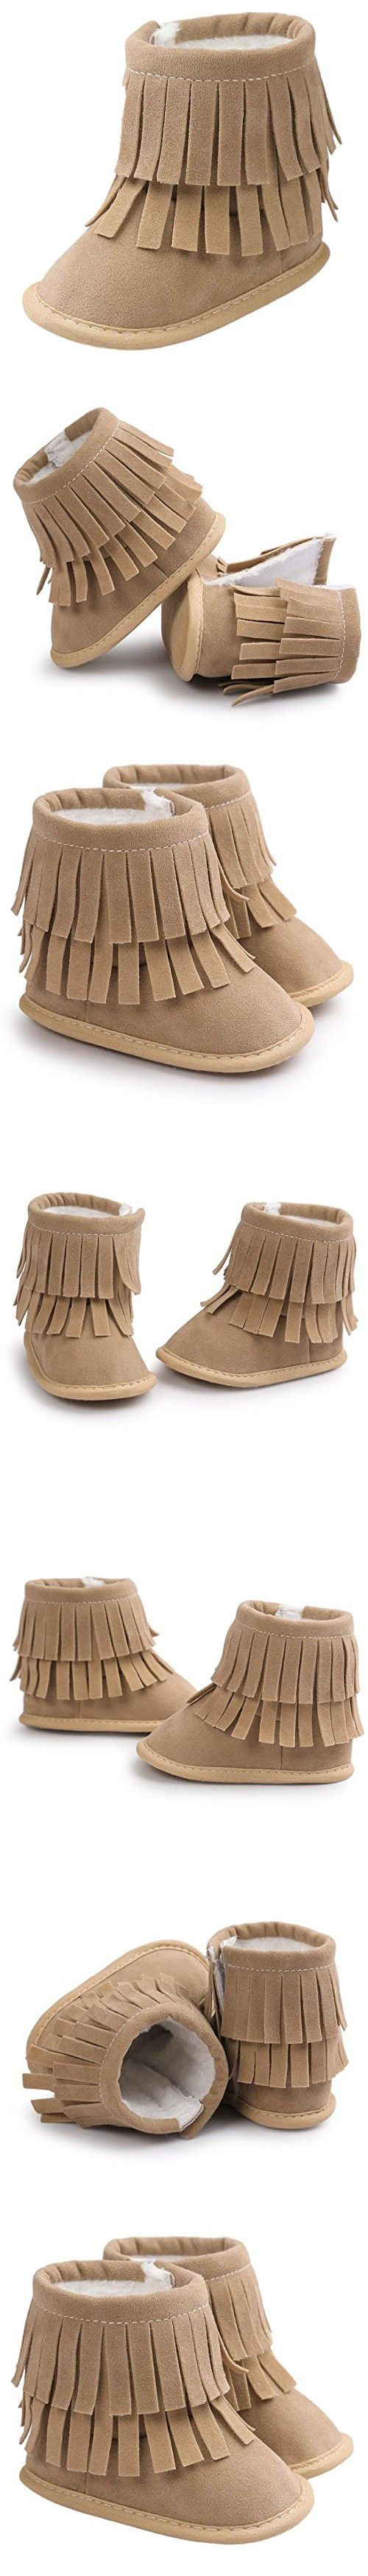 Voberry Baby Toddler Girls Boys Winter Warm Snow Boot Tassels Trimmed Boots Outdoor (12~18Month, light Khaki)